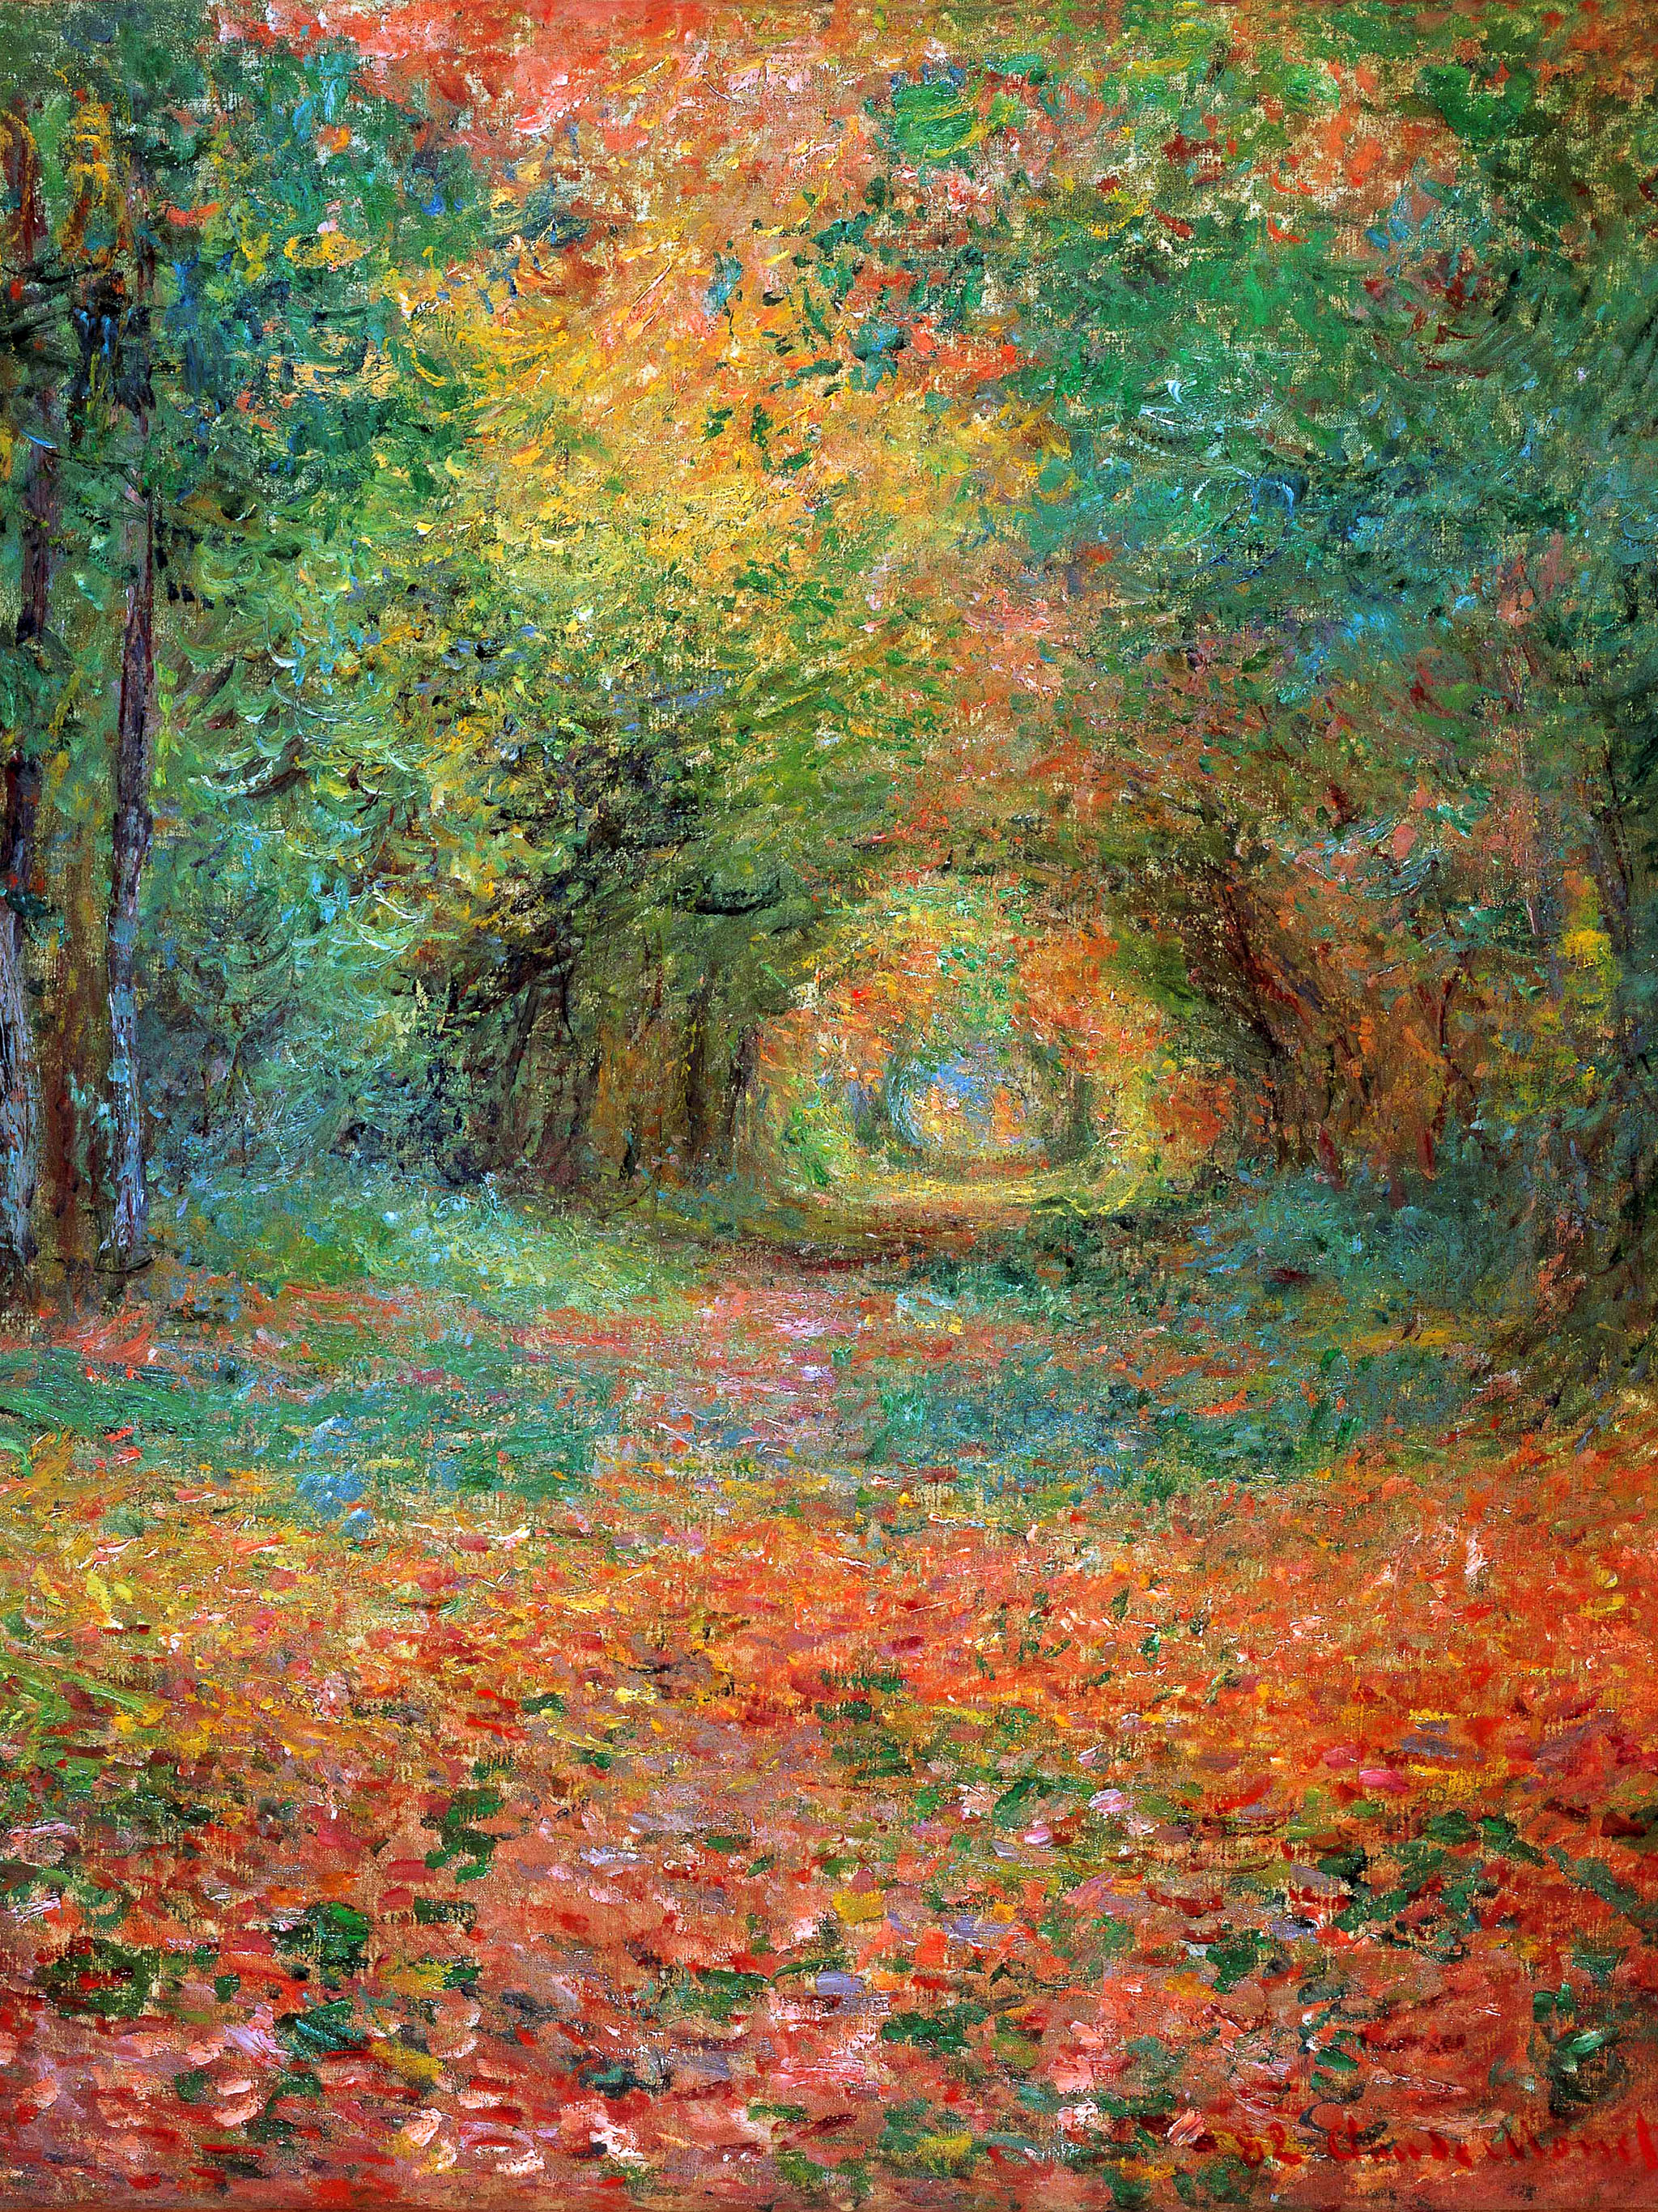 クロード・モネ サン=ジェルマンの森の中で Claude Monet - The Undergrowth in the Forest of Saint-Germain 2048x2732